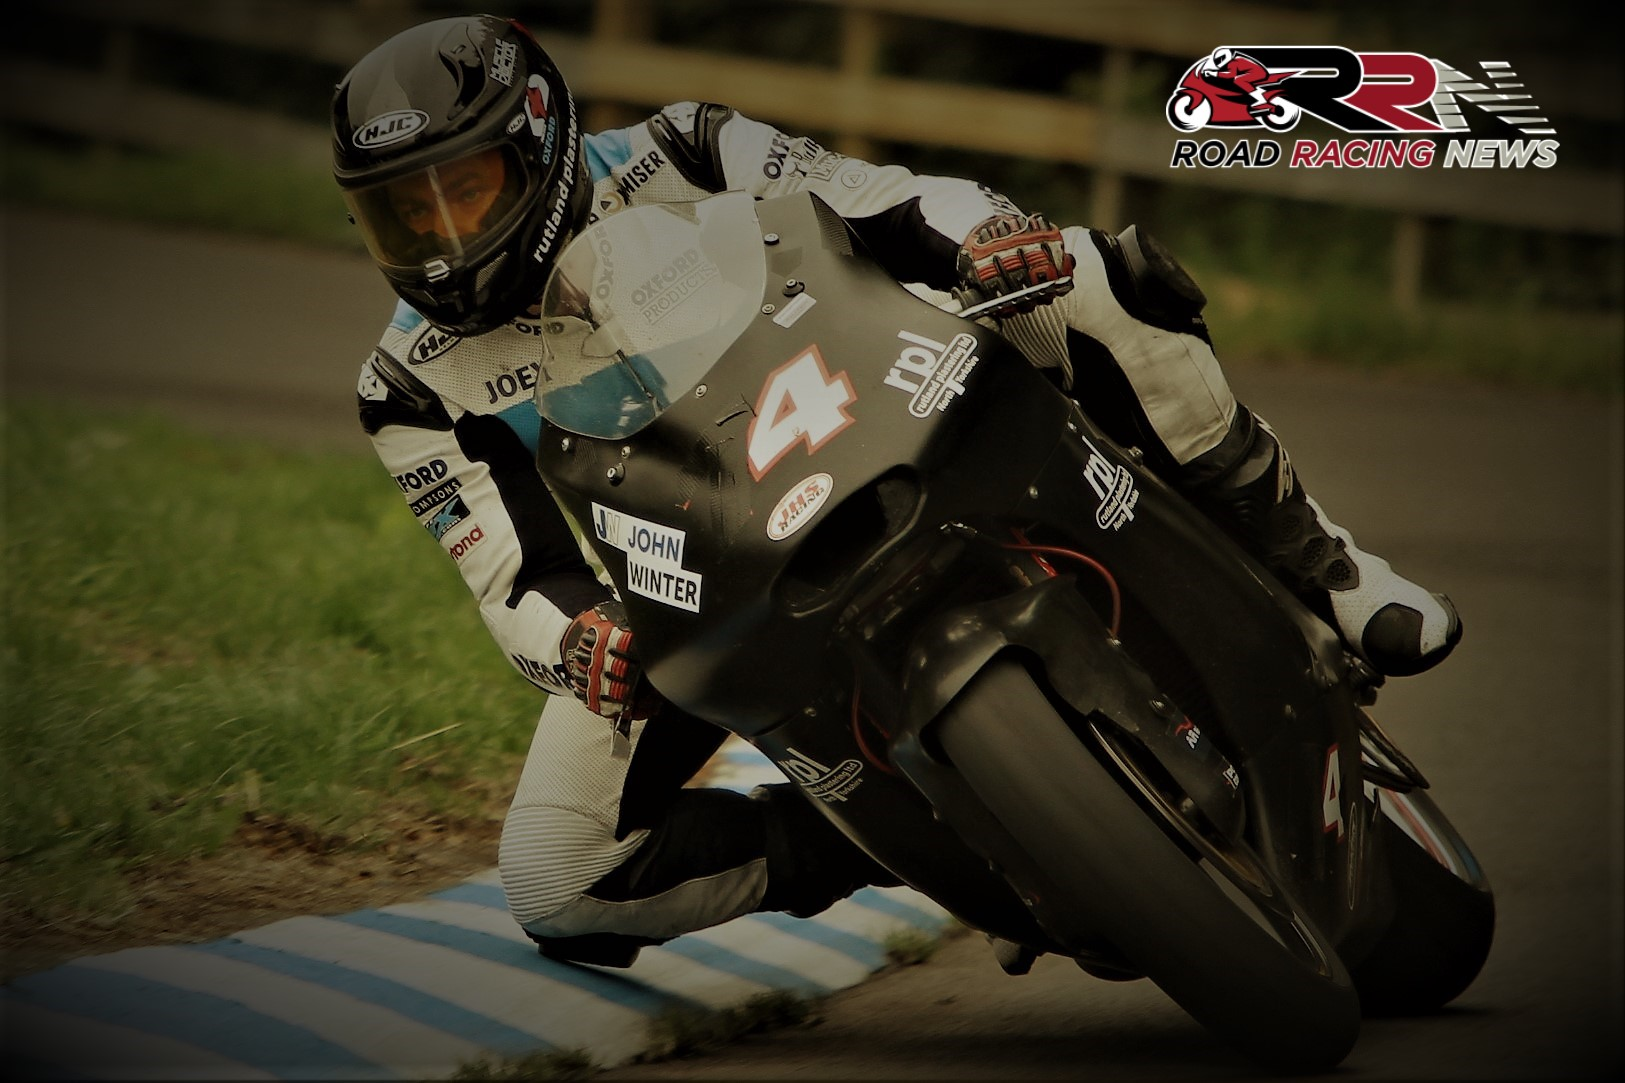 Thompson Hoping To Sample Oliver's Mount, Aberdare Park Events